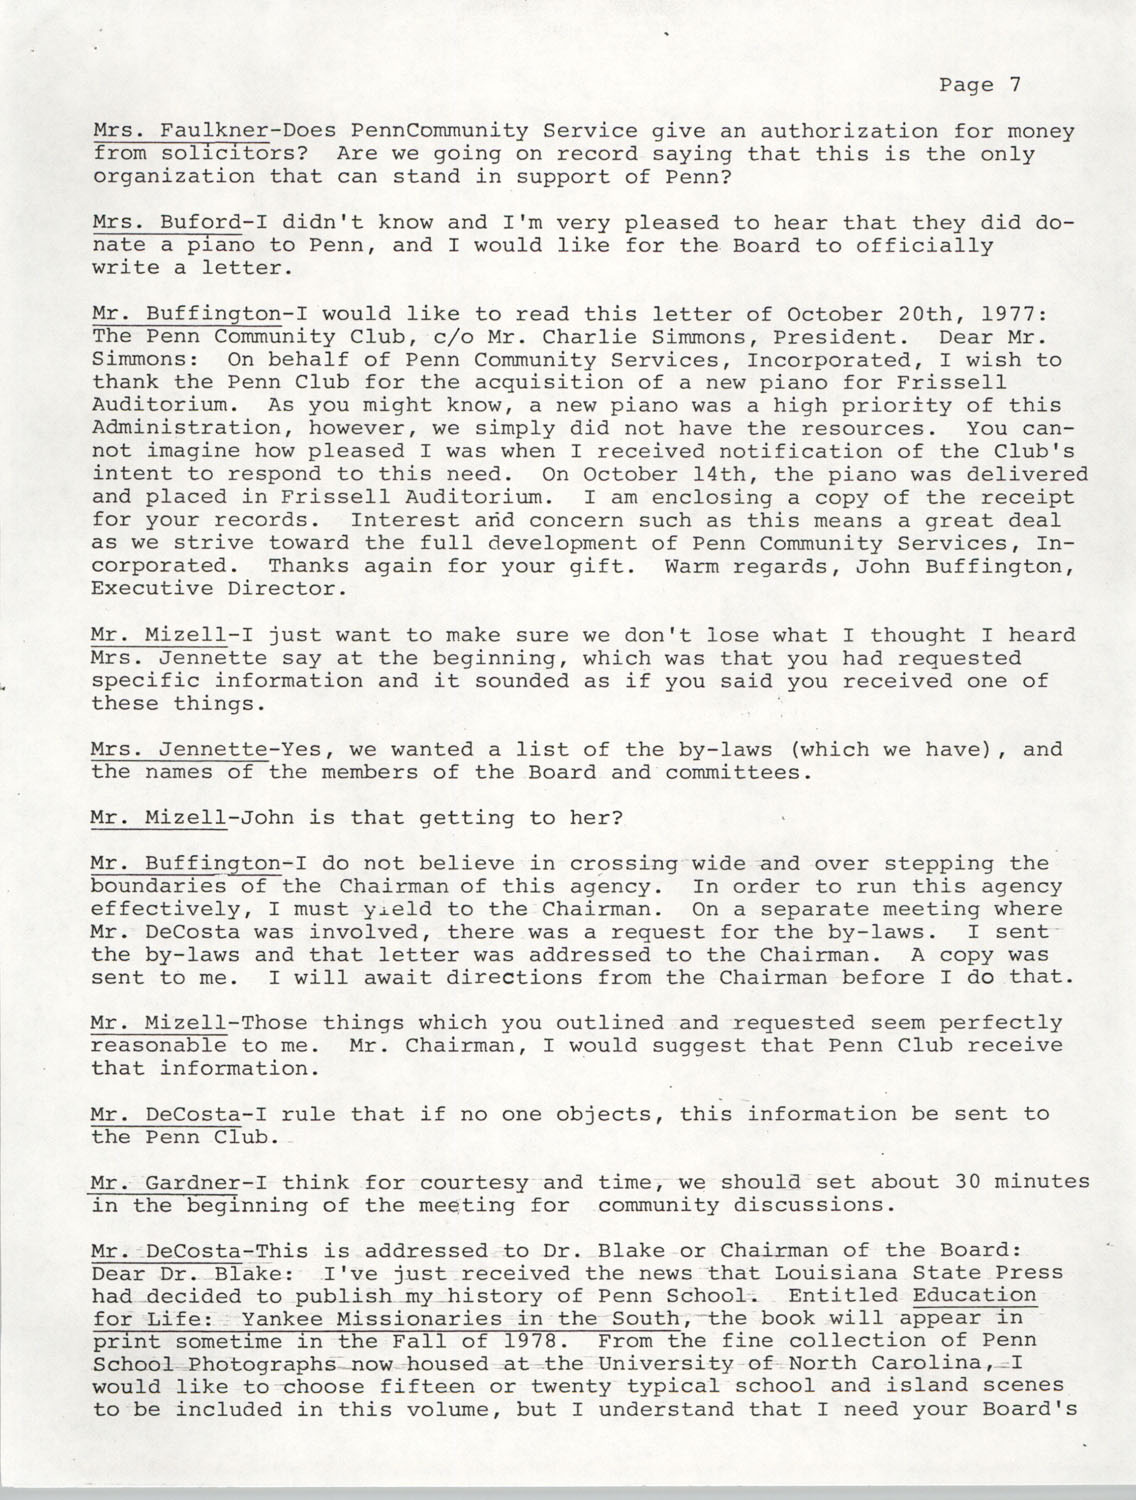 Minutes, Annual Board Meeting, Penn Community Services, October 22, 1977, Page 7